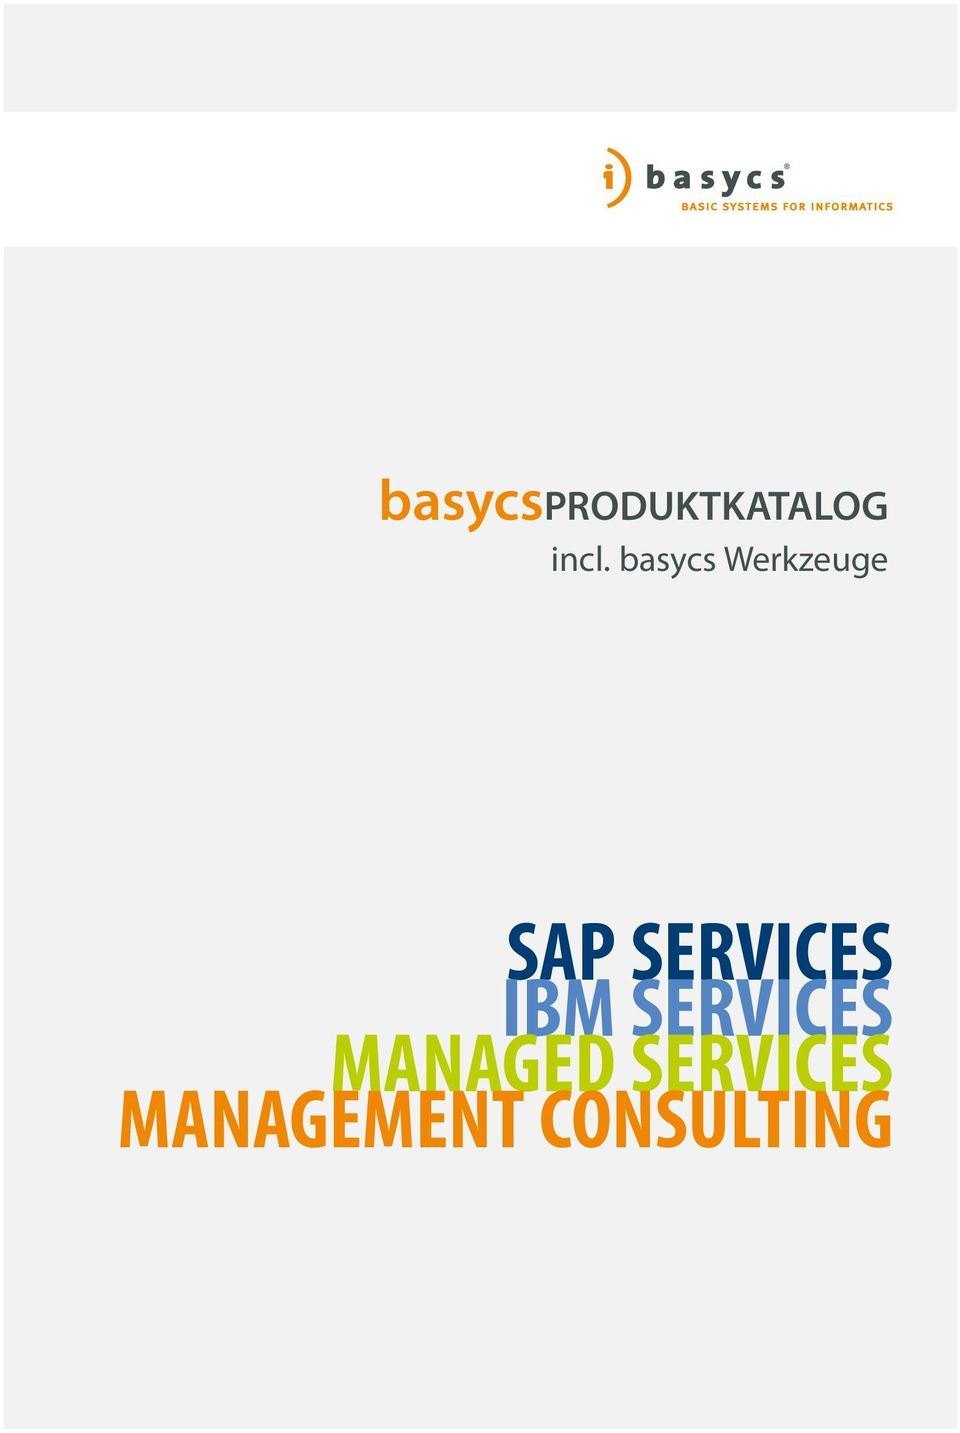 SERVICES IBM SERVICES